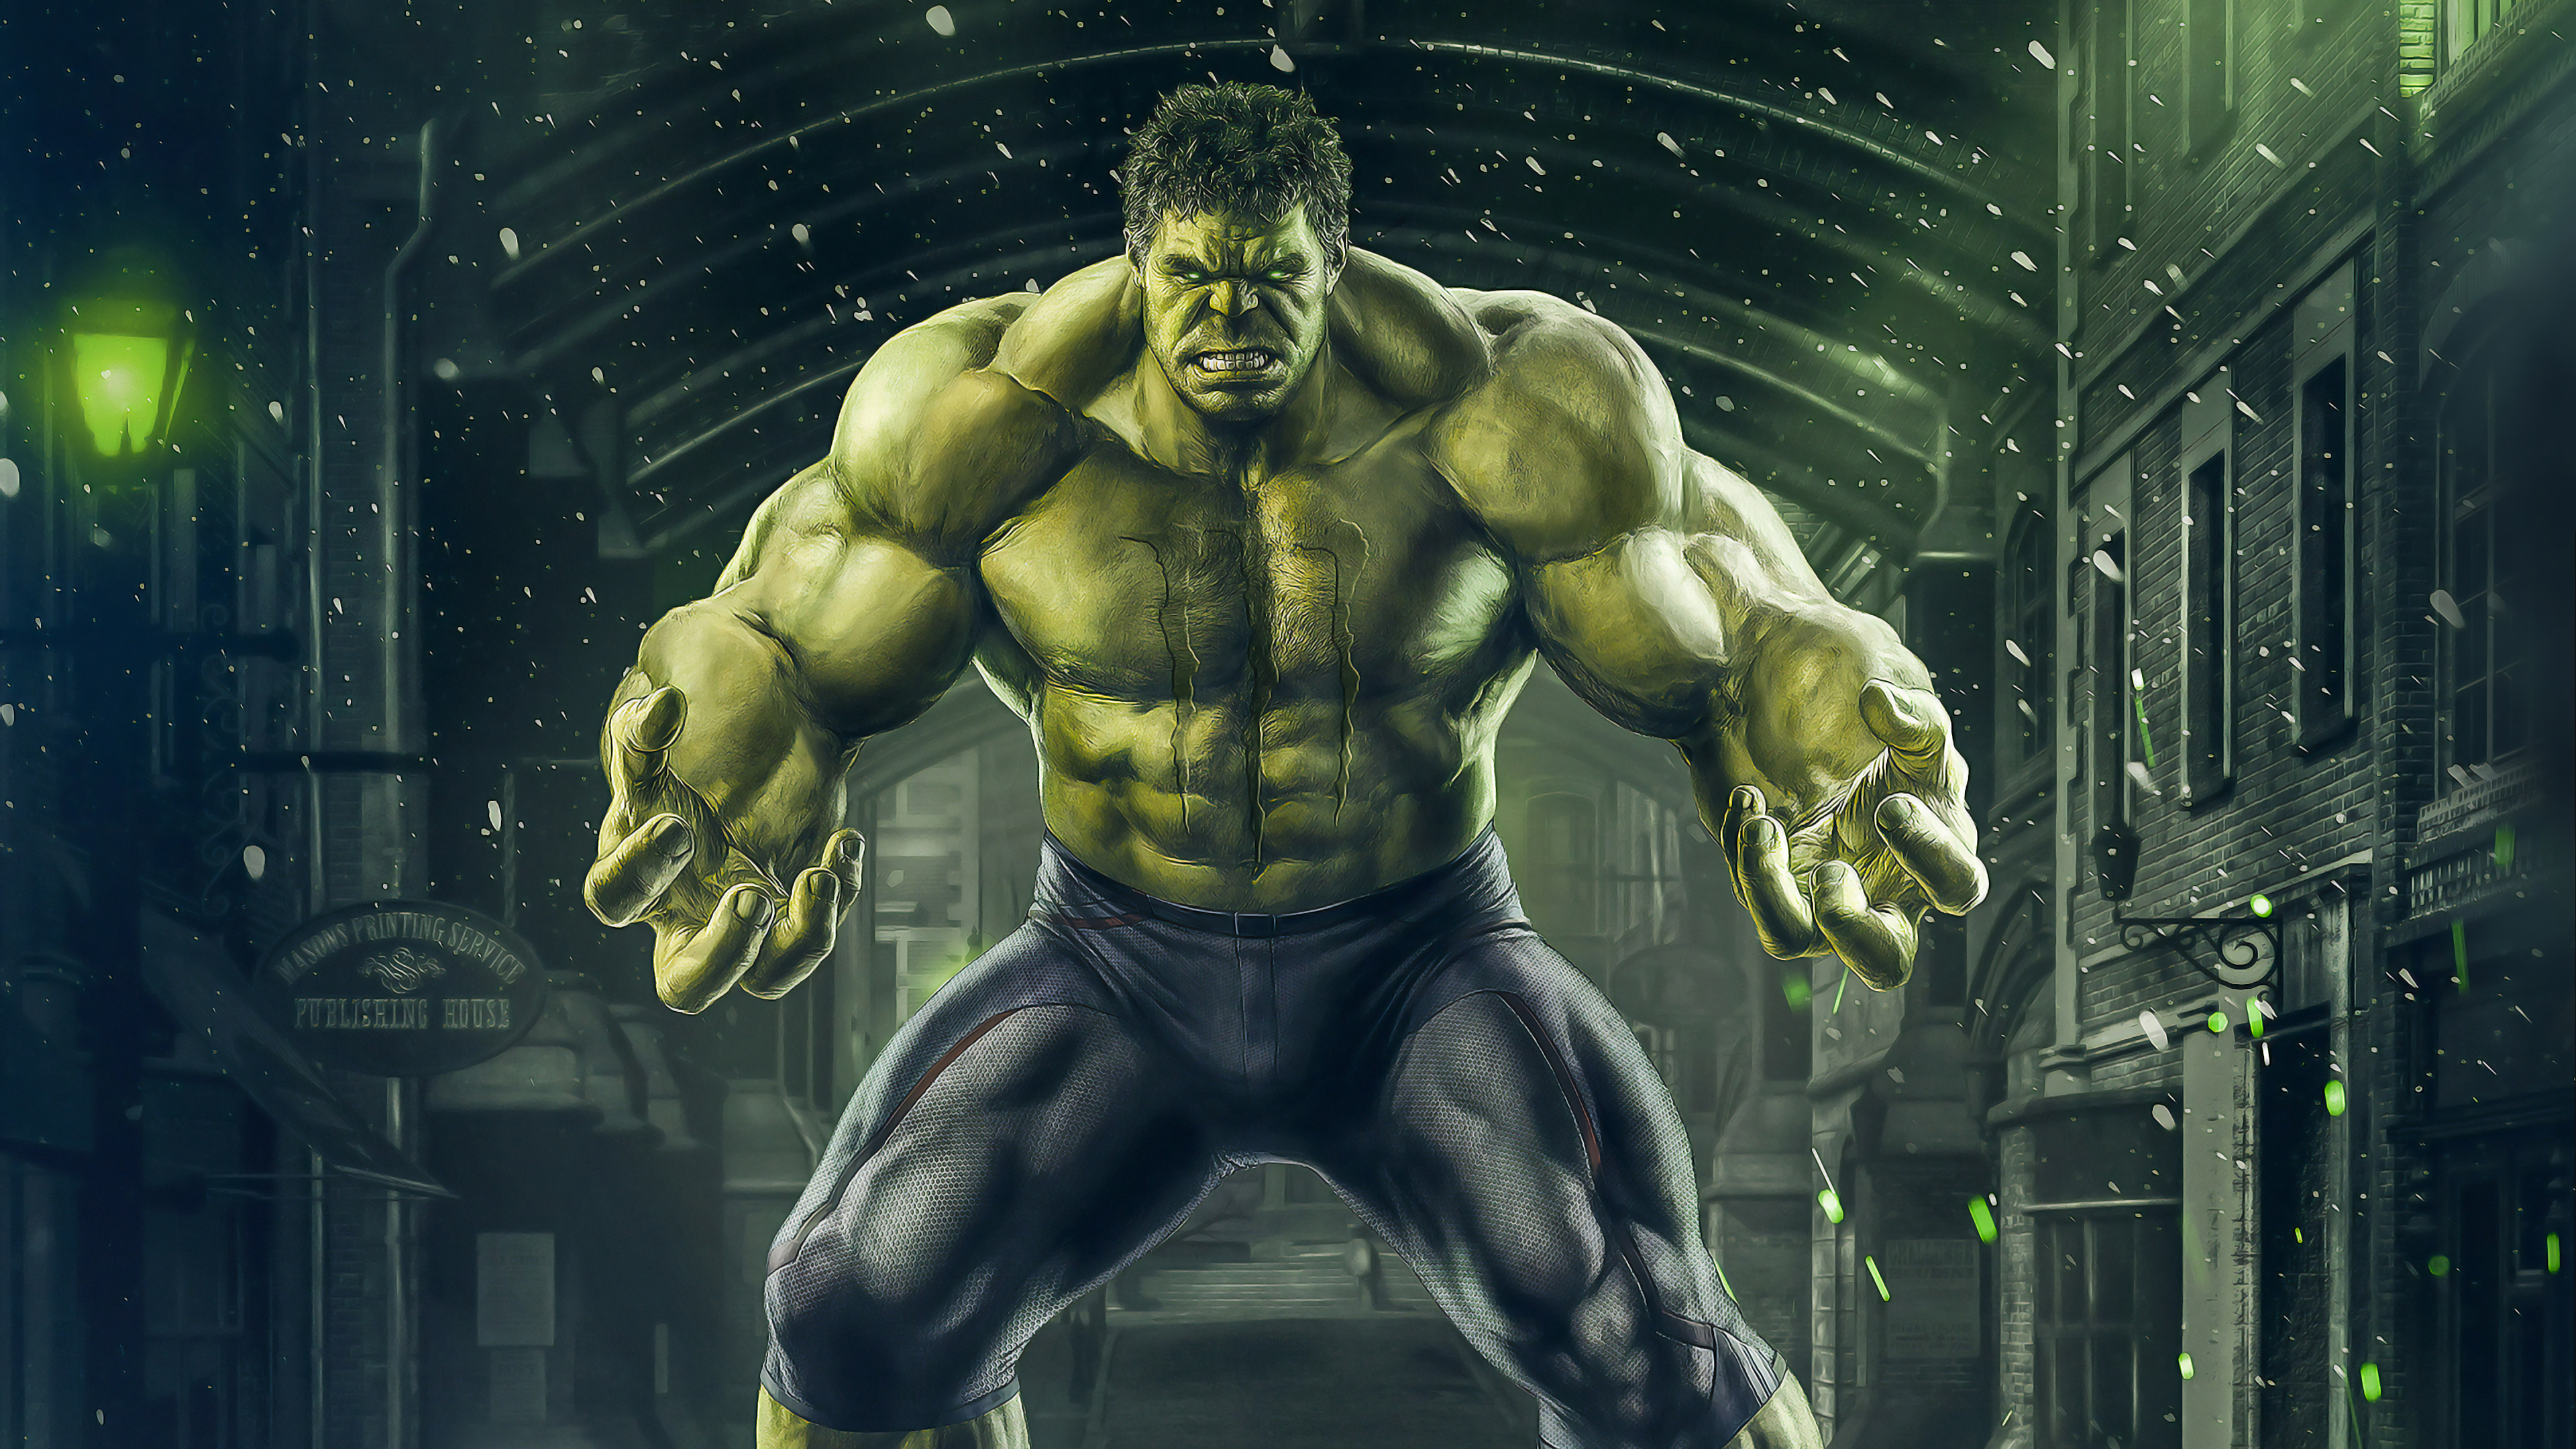 hulk the beast 4k 1559764067 - Hulk The Beast 4k - superheroes wallpapers, hulk wallpapers, hd-wallpapers, behance wallpapers, 4k-wallpapers